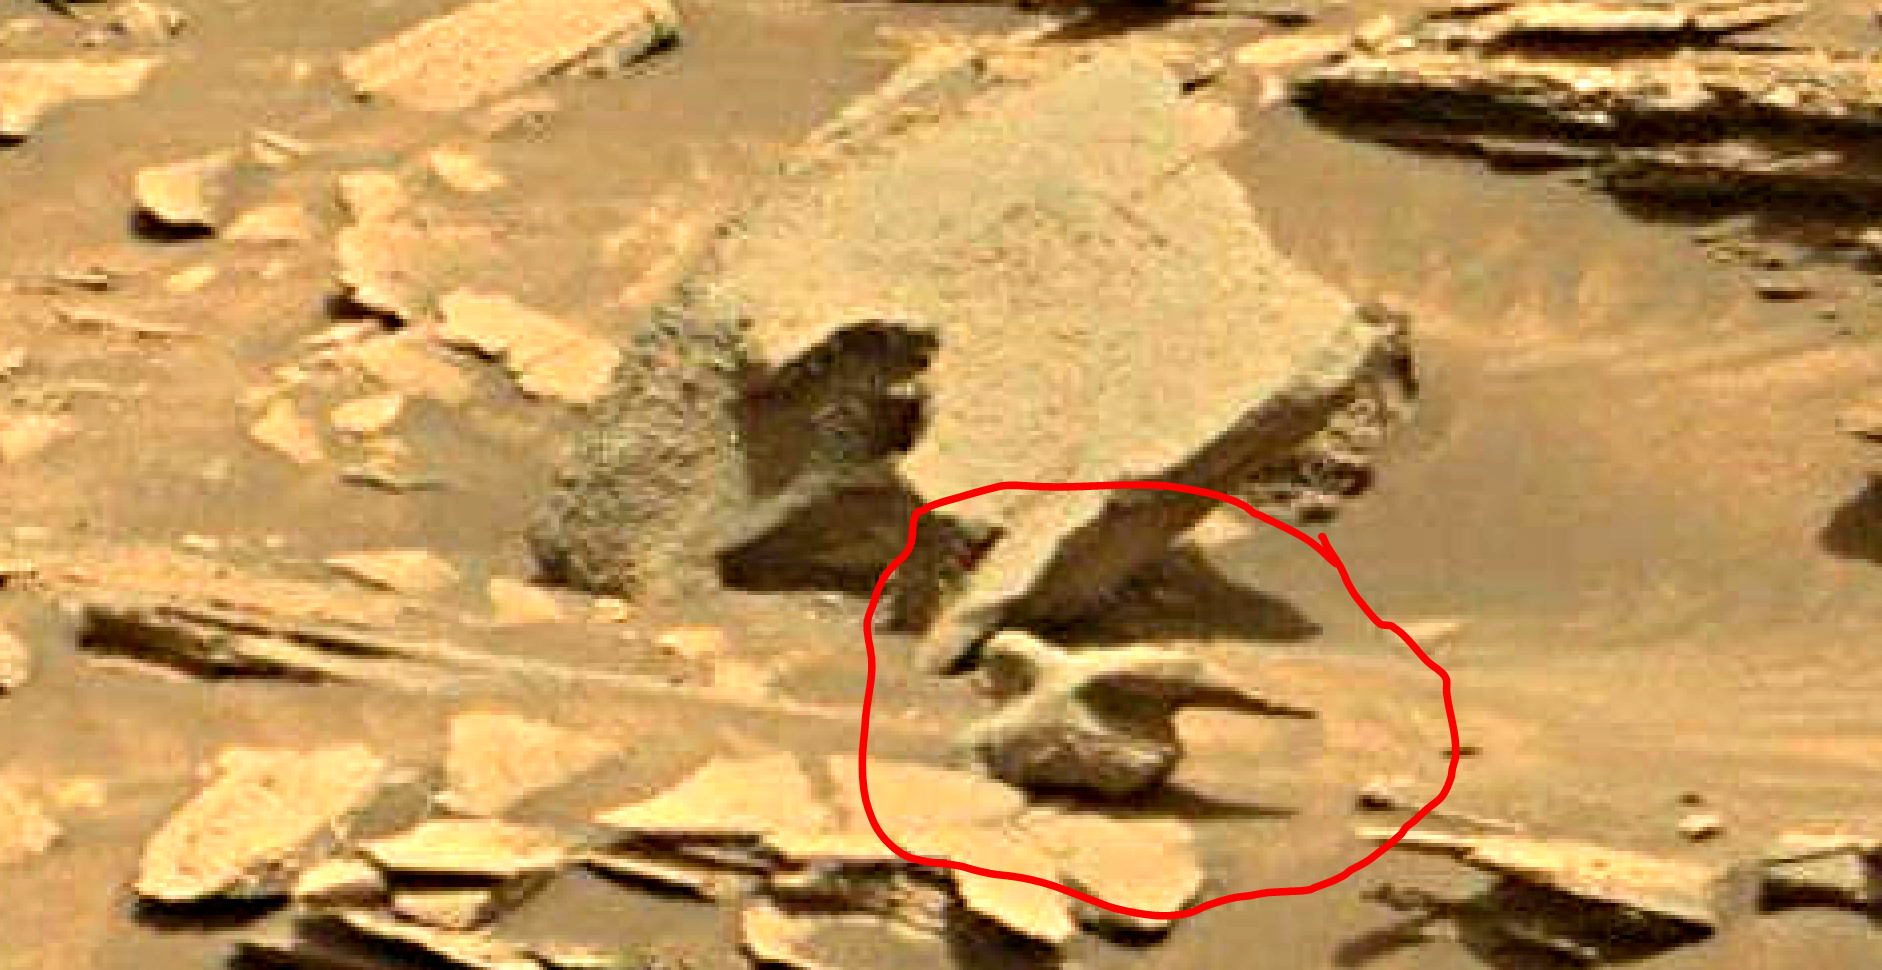 mars-sol-1450-anomaly-artifacts-1a-was-life-on-mars